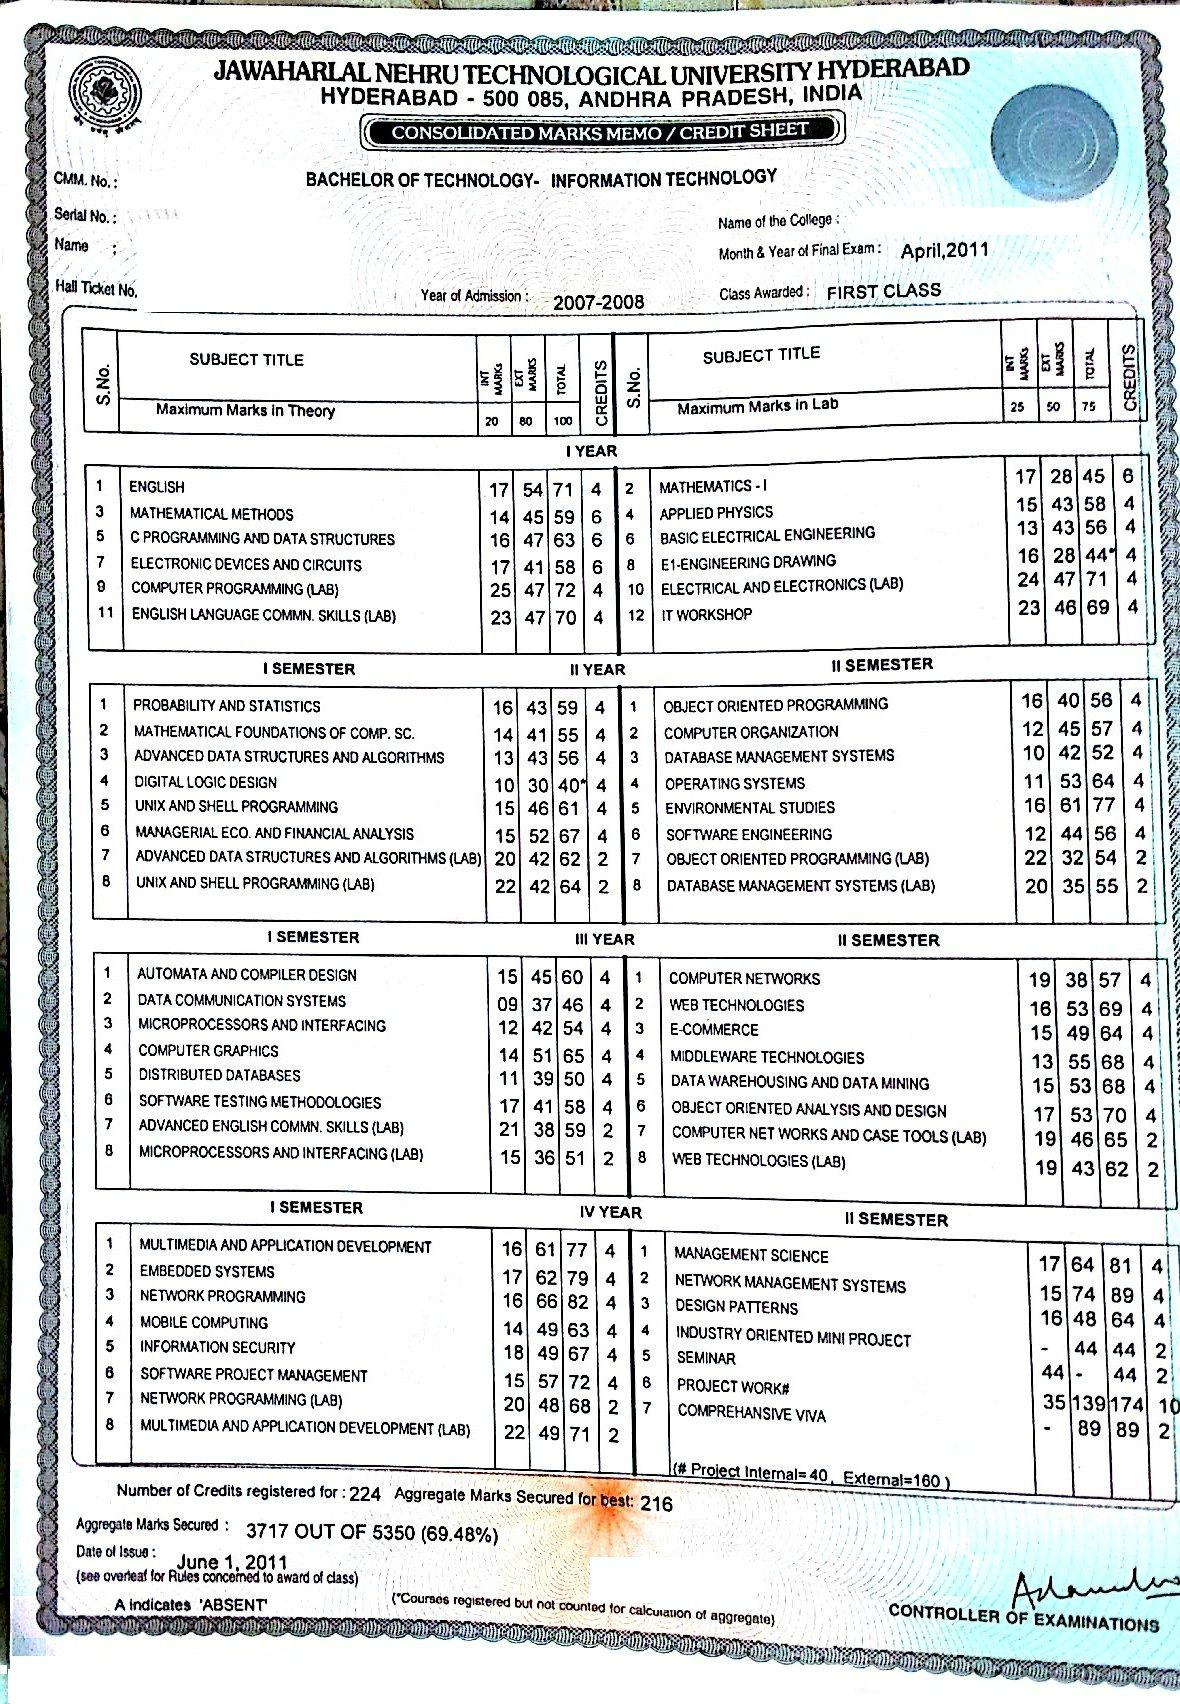 Mba Results: Mba Results Jntu Hyderabad 2014